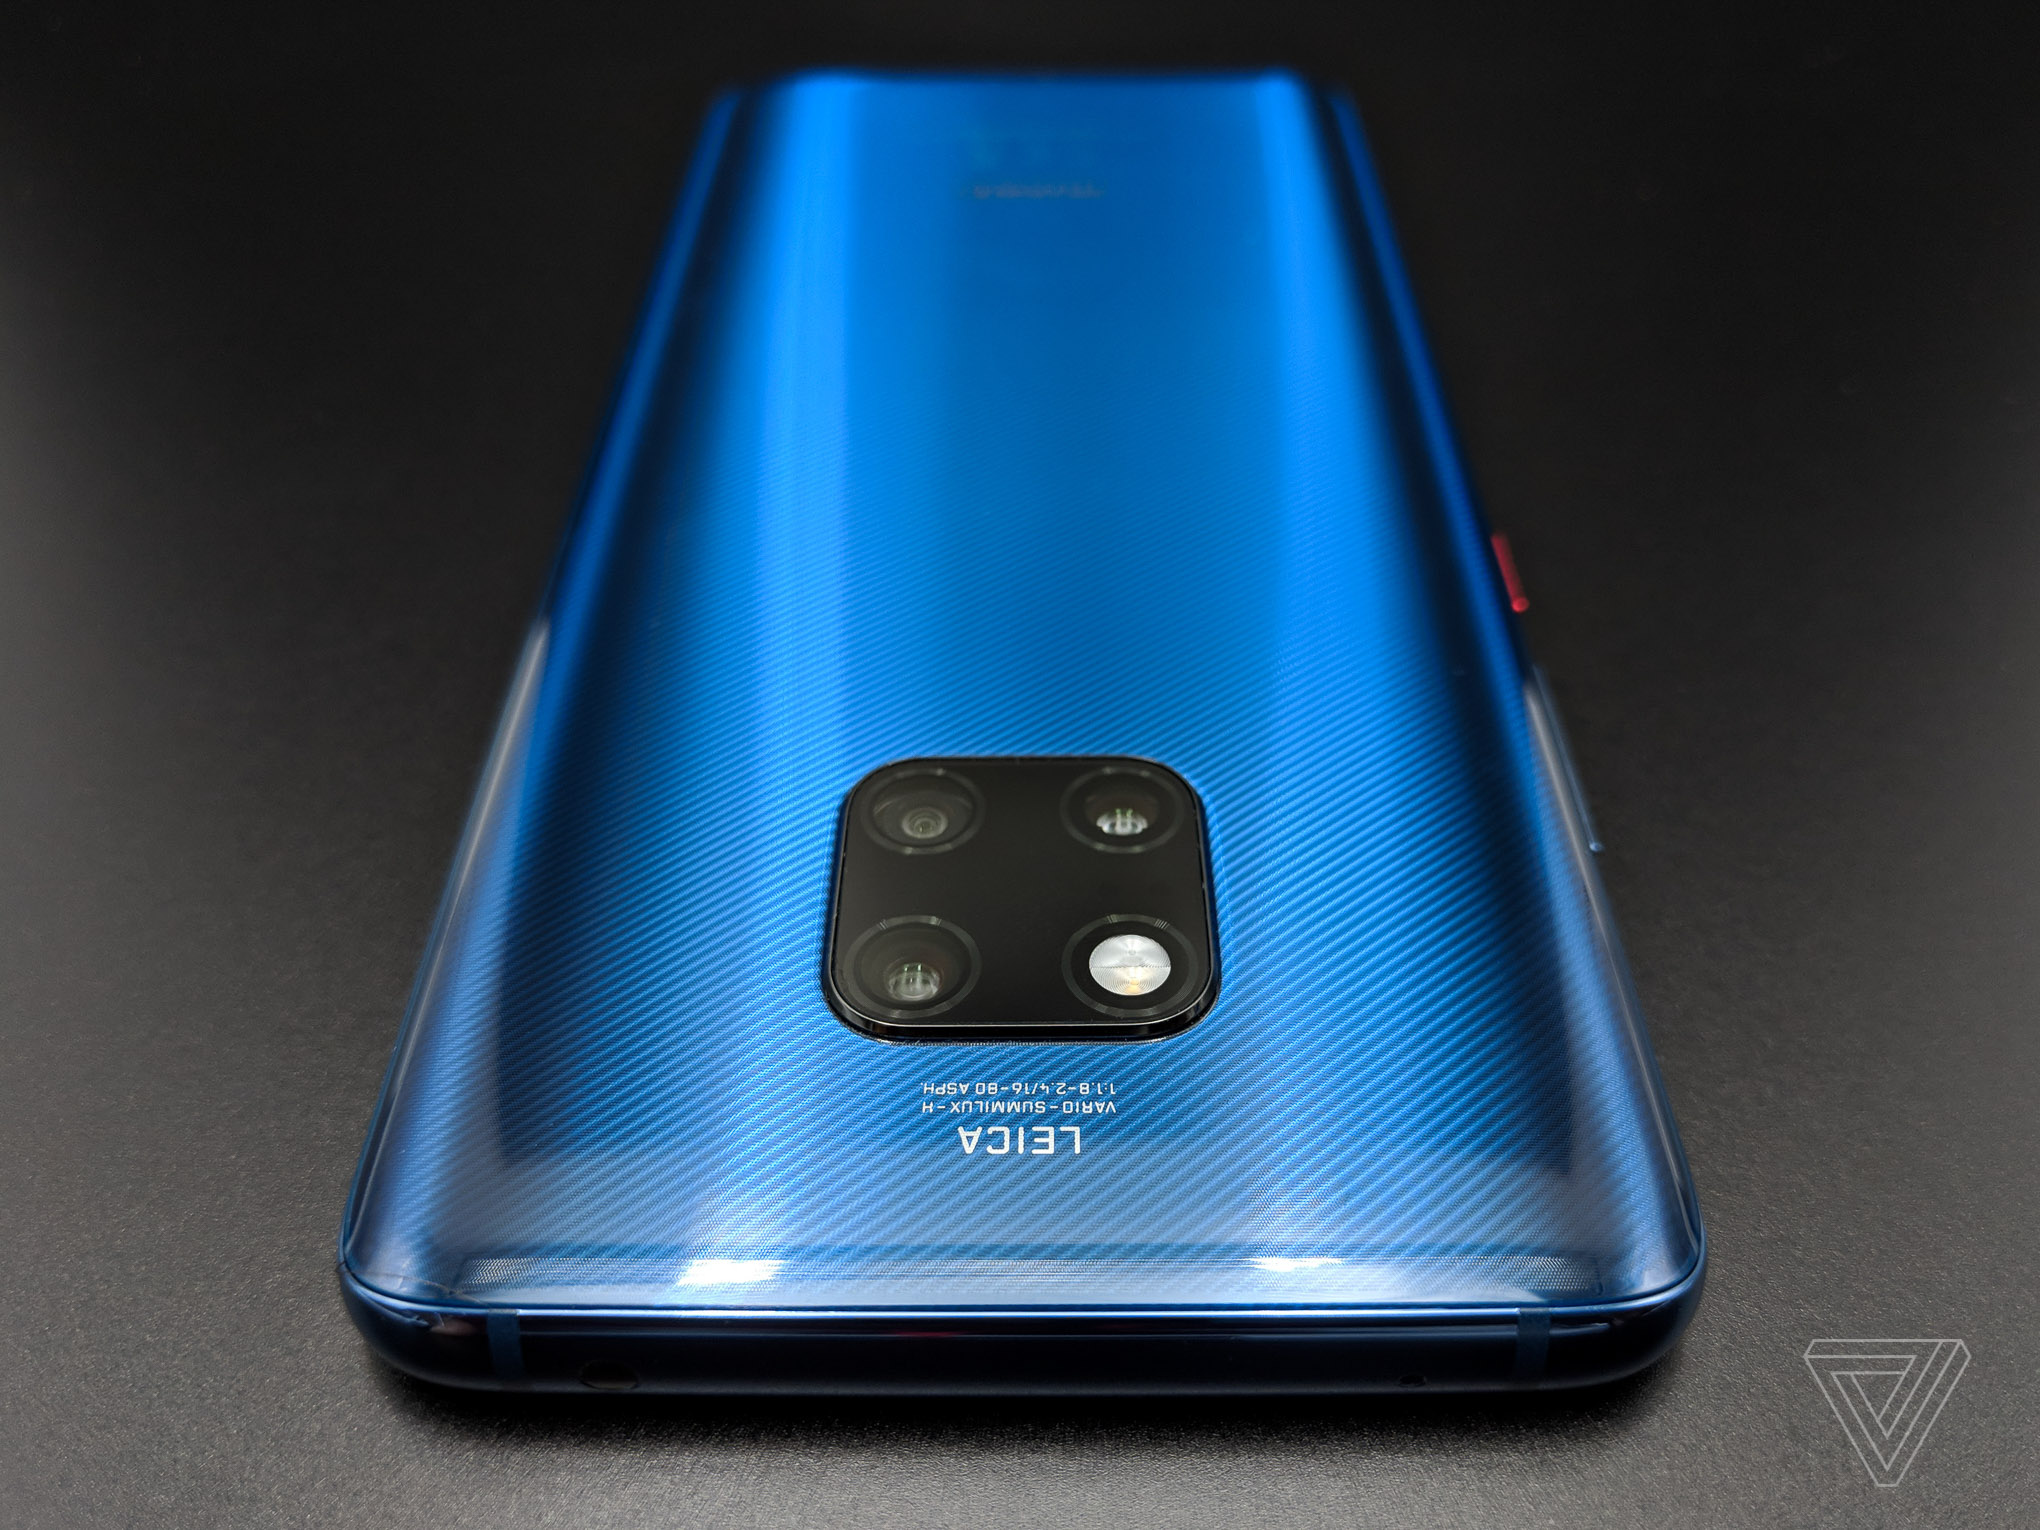 Huawei Mate 20 Pro review: the best phone America can't get